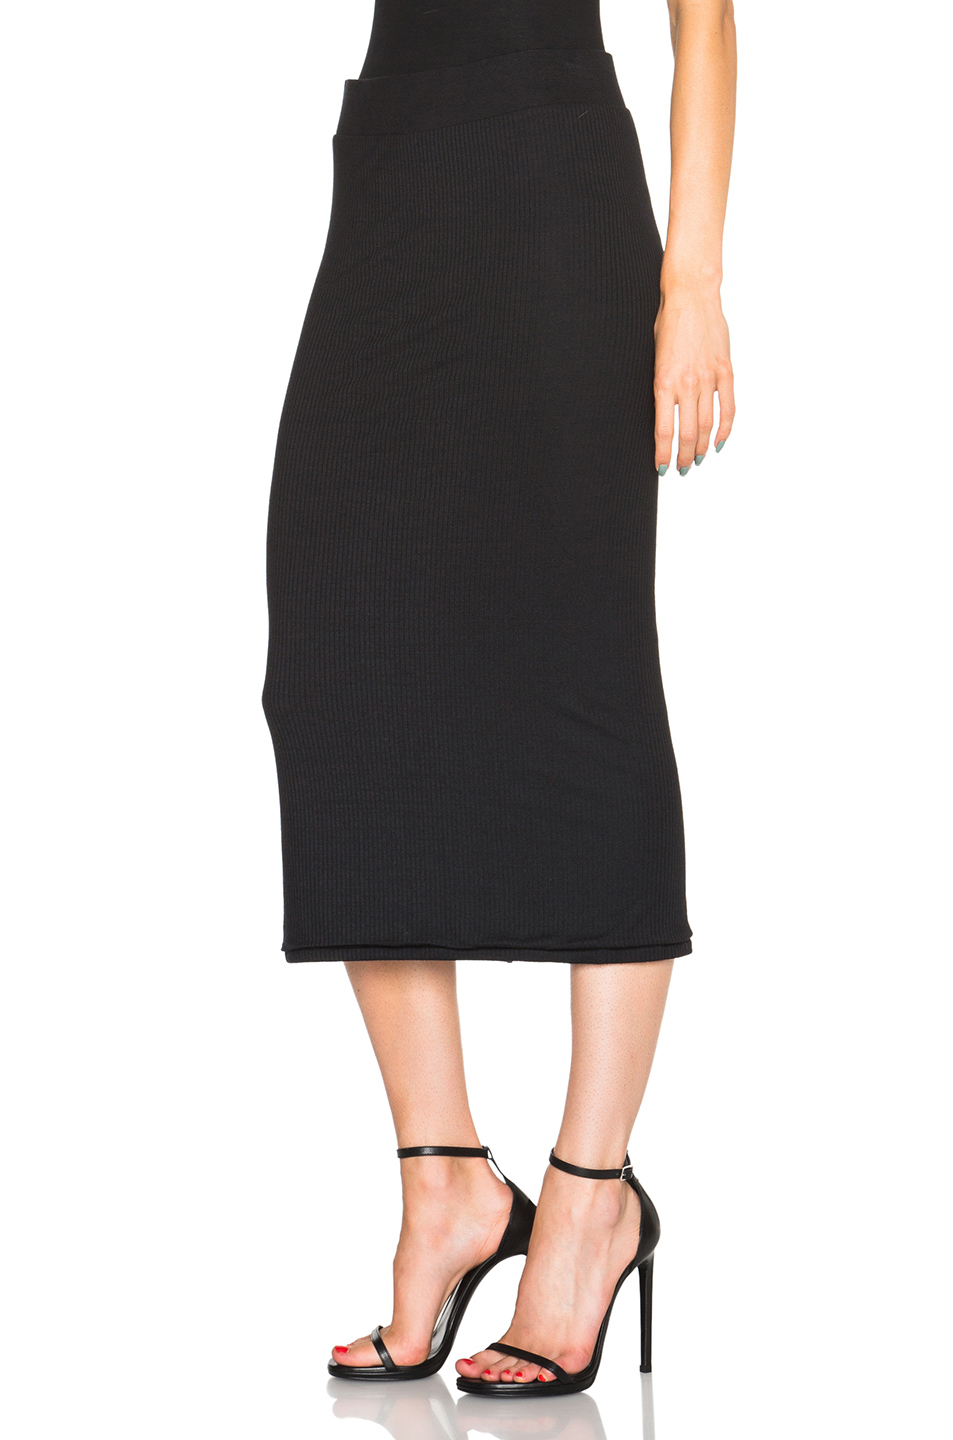 Midi skirts are available in a range of styles and cuts that flatter every figure. Choose from a-line skirts, tulle skirts, plaid skirts, pleated skirts and many more. Coordinate your midi with a solid colored button-down shirt for the office, or add a fitted jacket and sneakers for a casual weekend look.